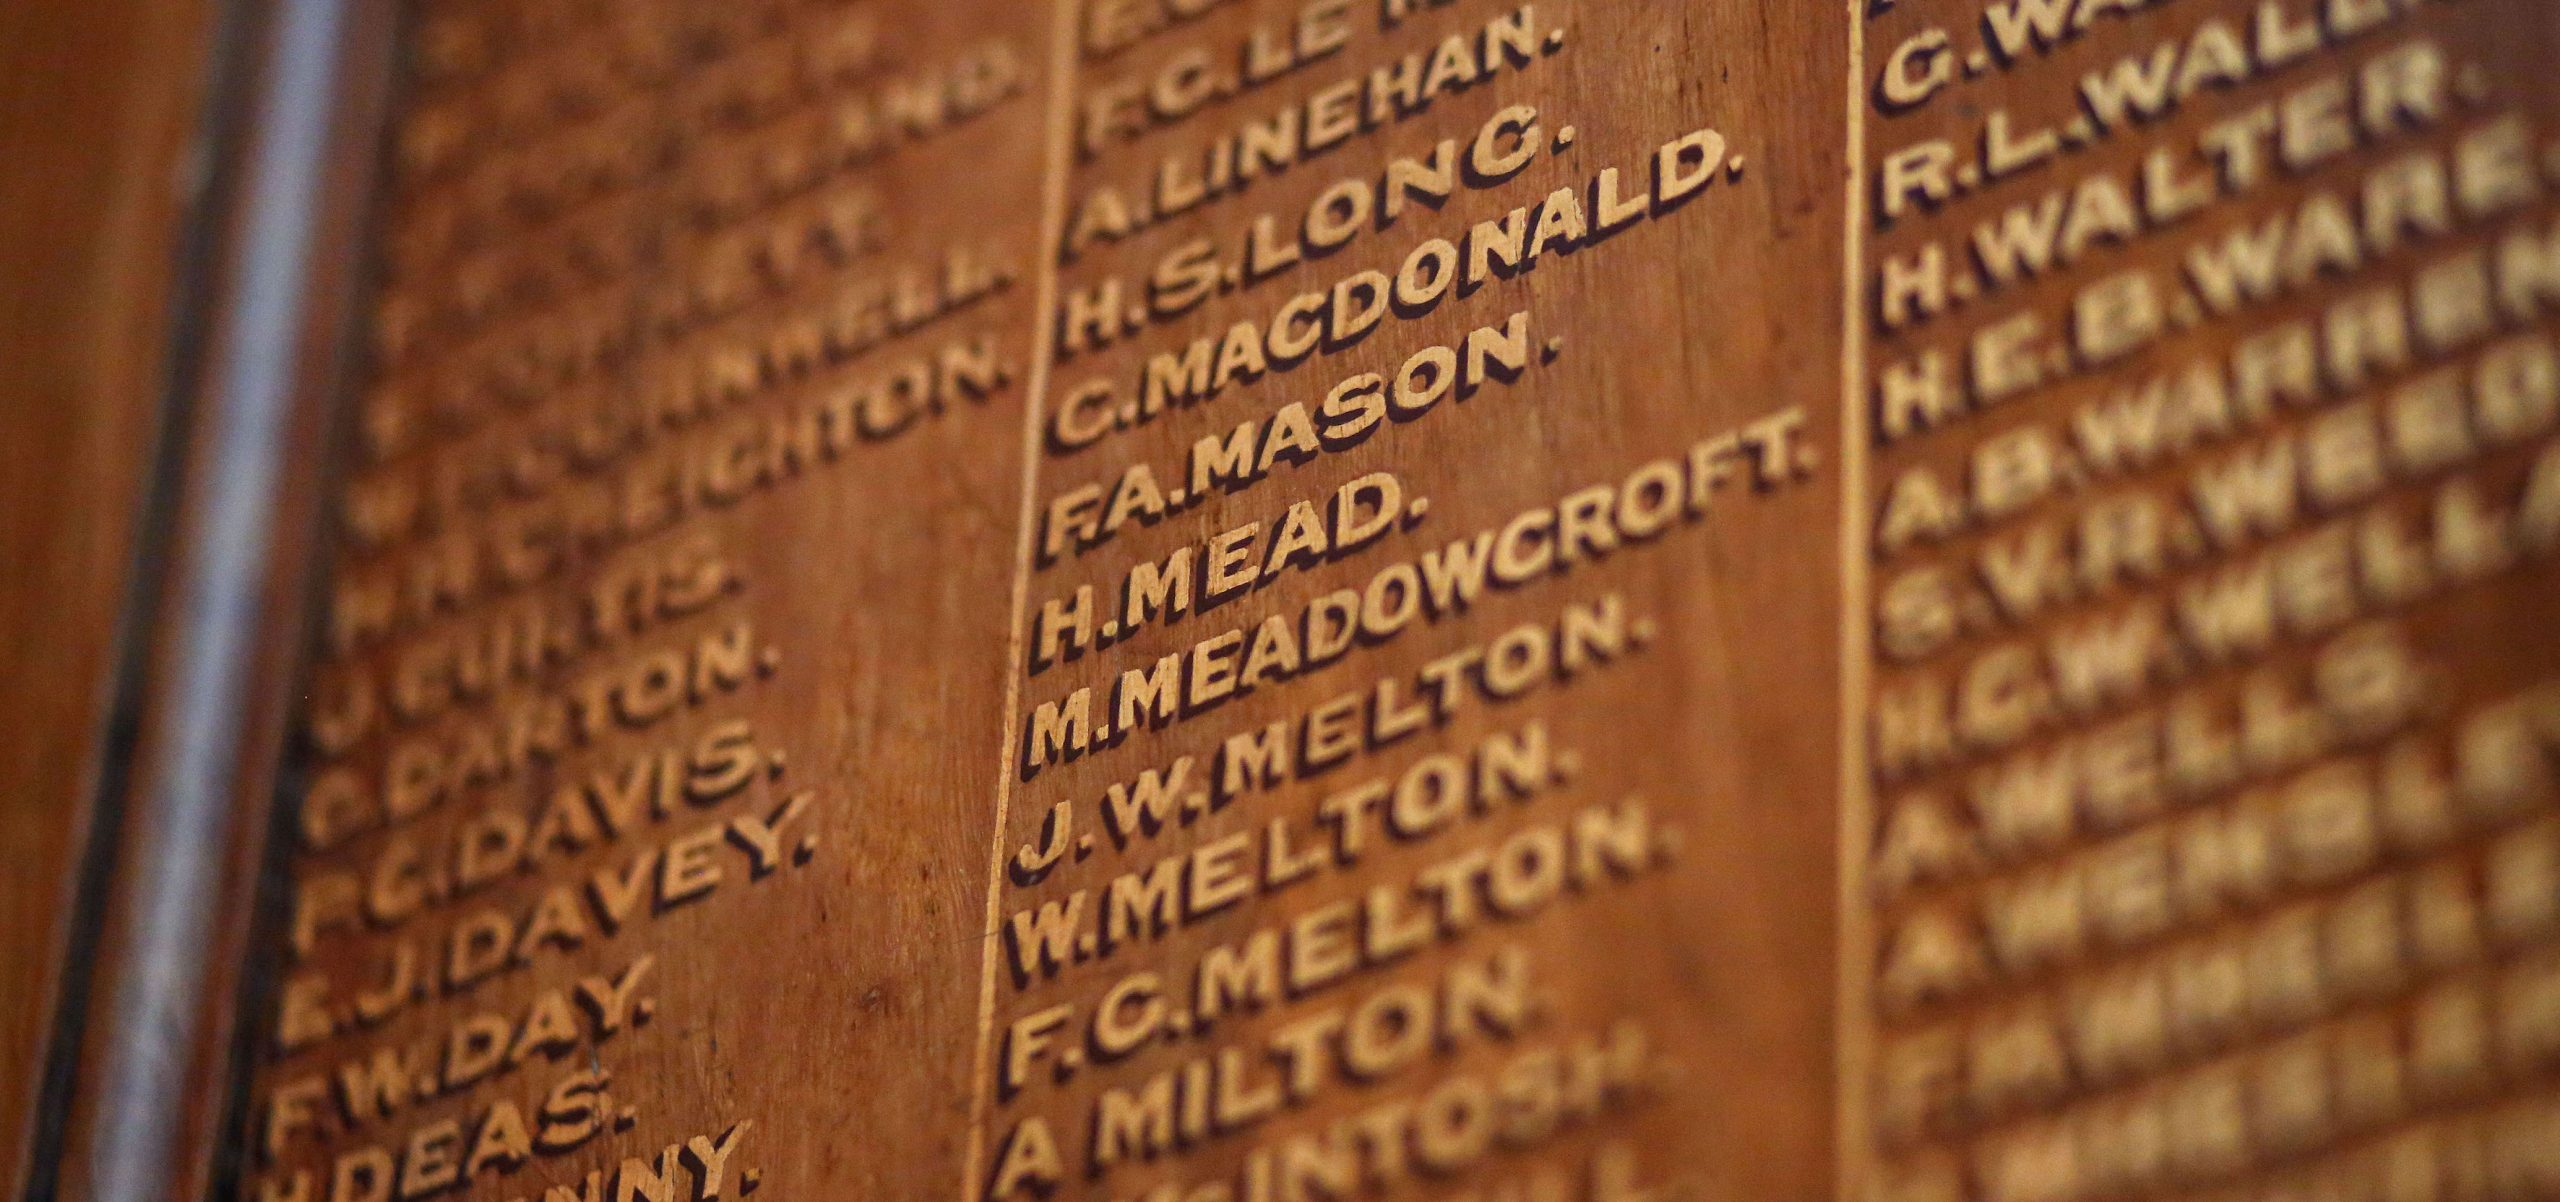 Tablet listing surnames and initials of returning soldiers